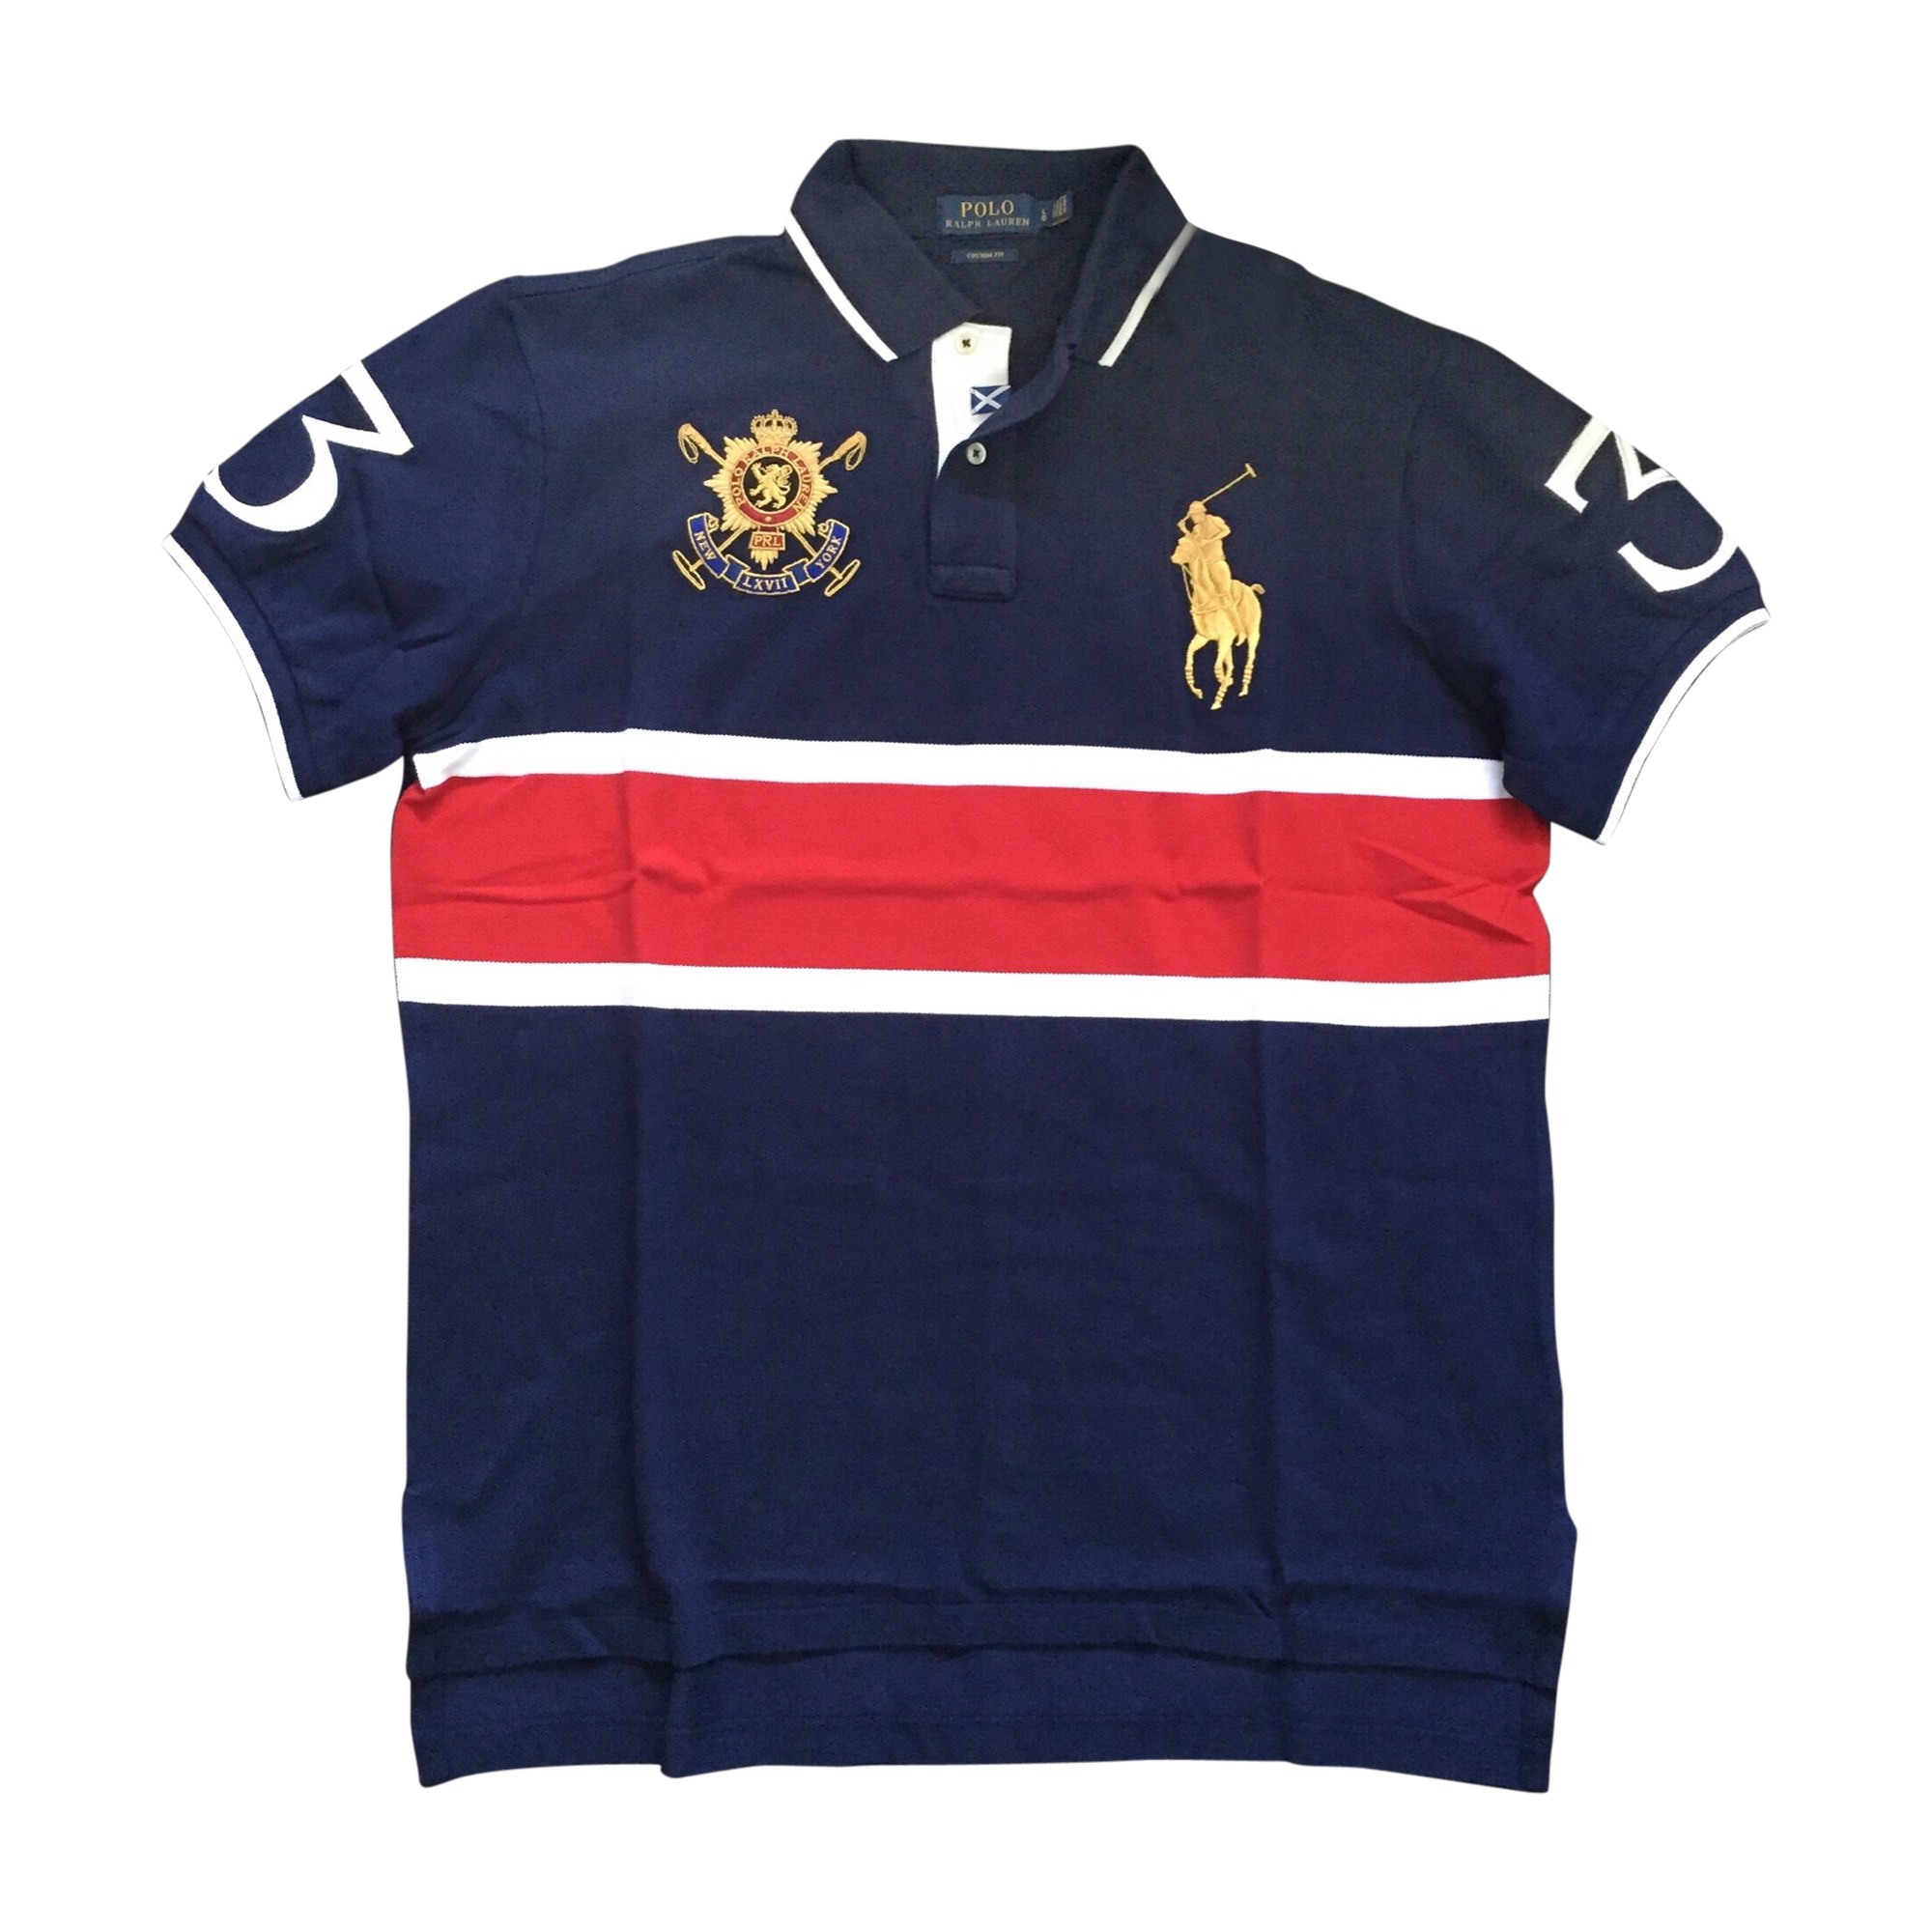 Lauren Email Email Polo Email Ralph Polo Polo Ralph Lauren lcKFT1J